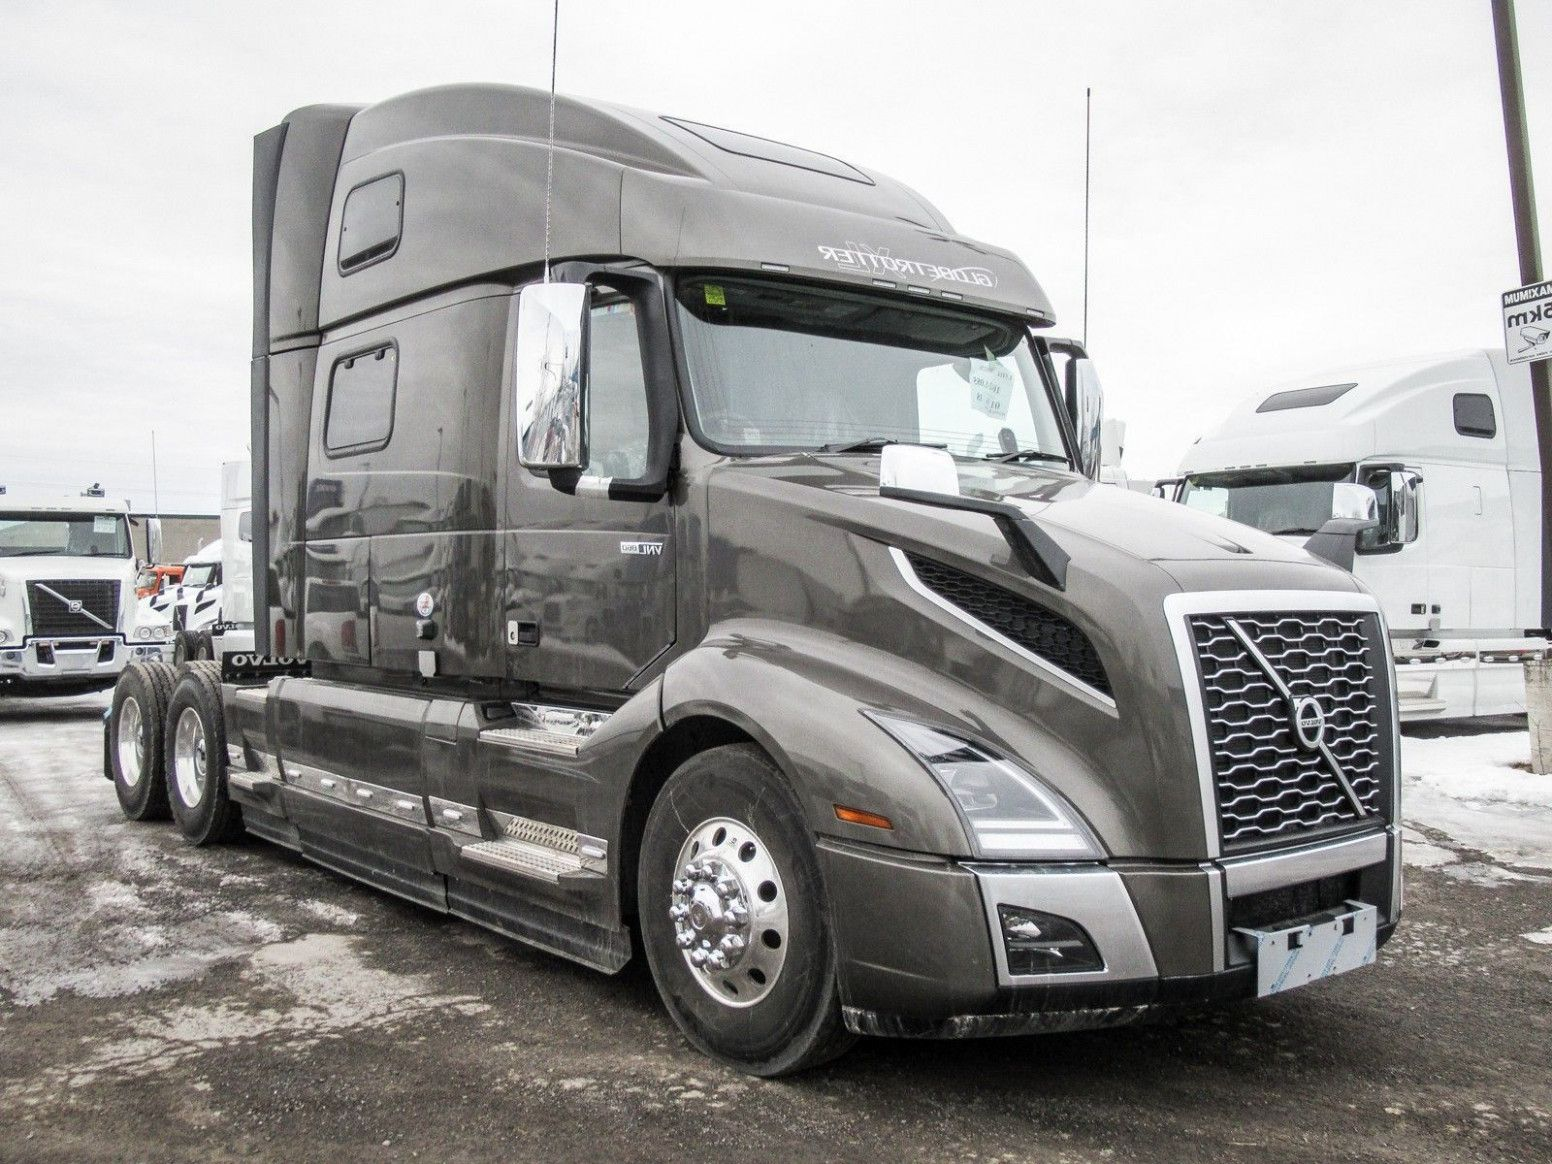 15 New Thoughts About 2020 Volvo 860 Globetrotter That Will Turn Your World Upside Down Volvo Volvo Trucks Tractors